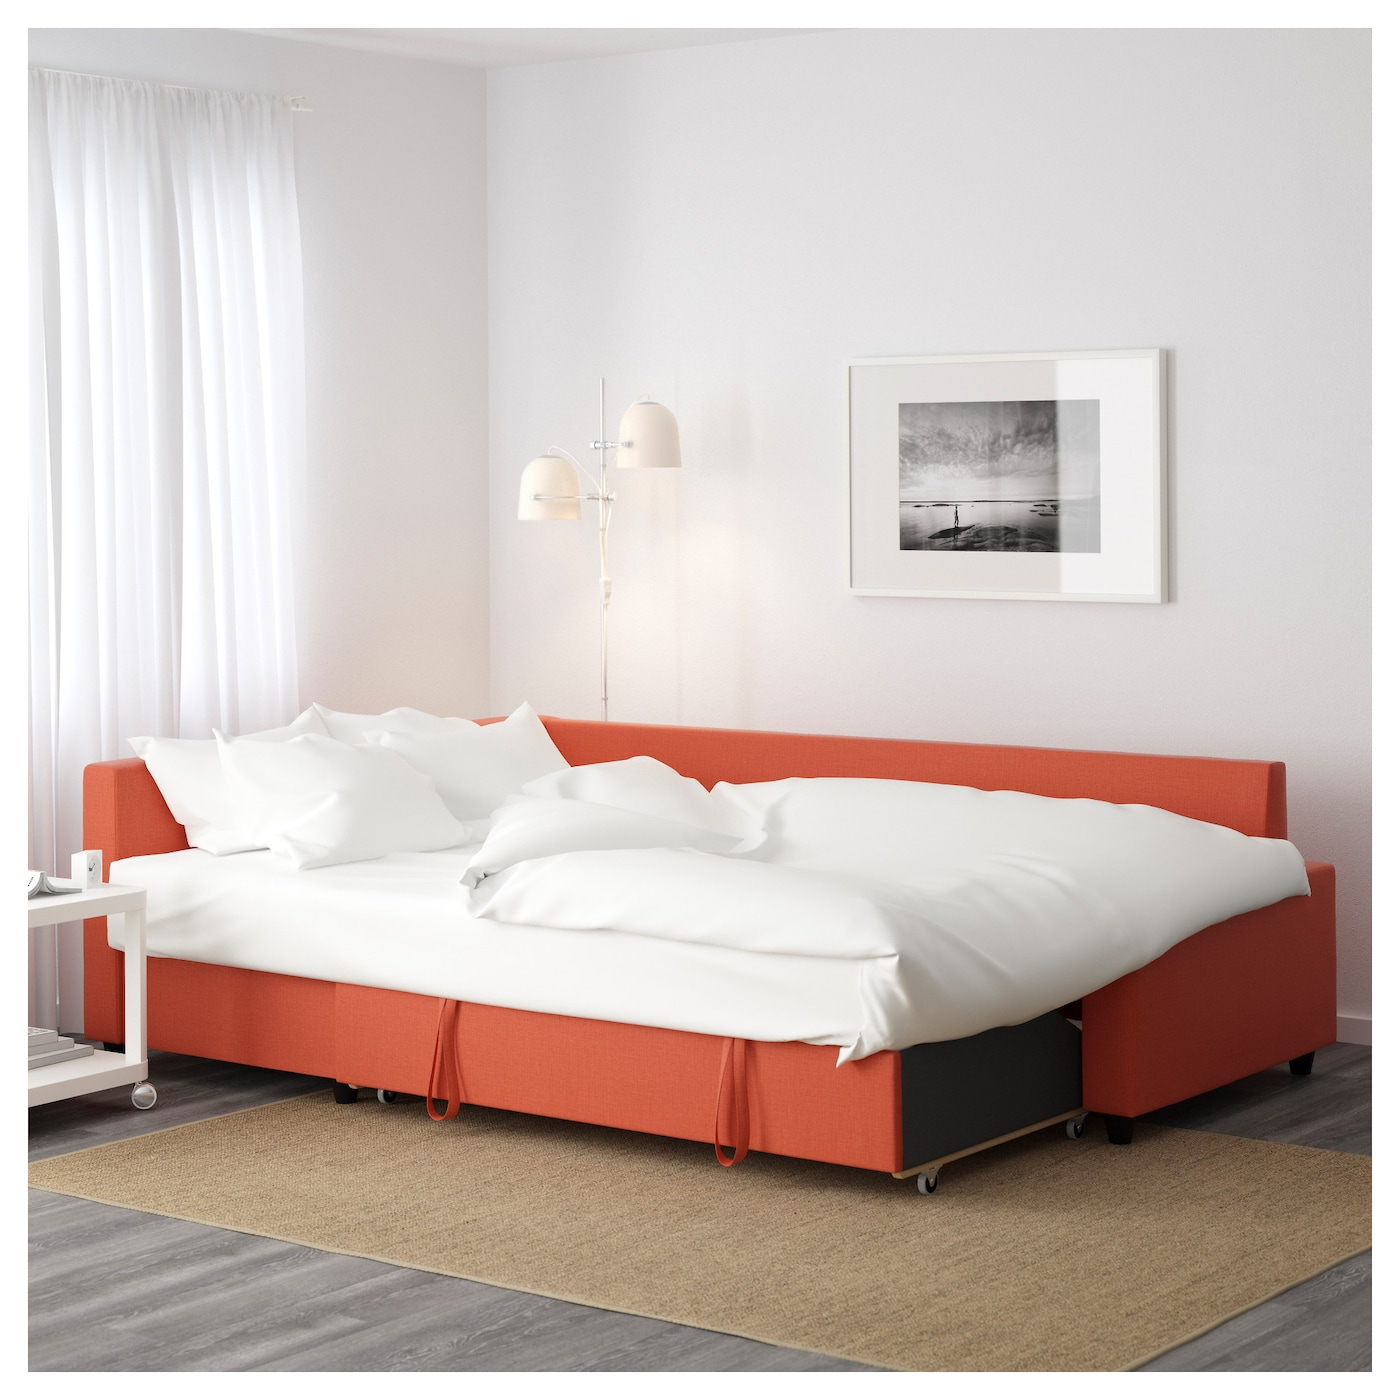 Jugendzimmer Einrichtungsideen Ikea ~ IKEA FRIHETEN corner sofa bed with storage Sofa, chaise longue and